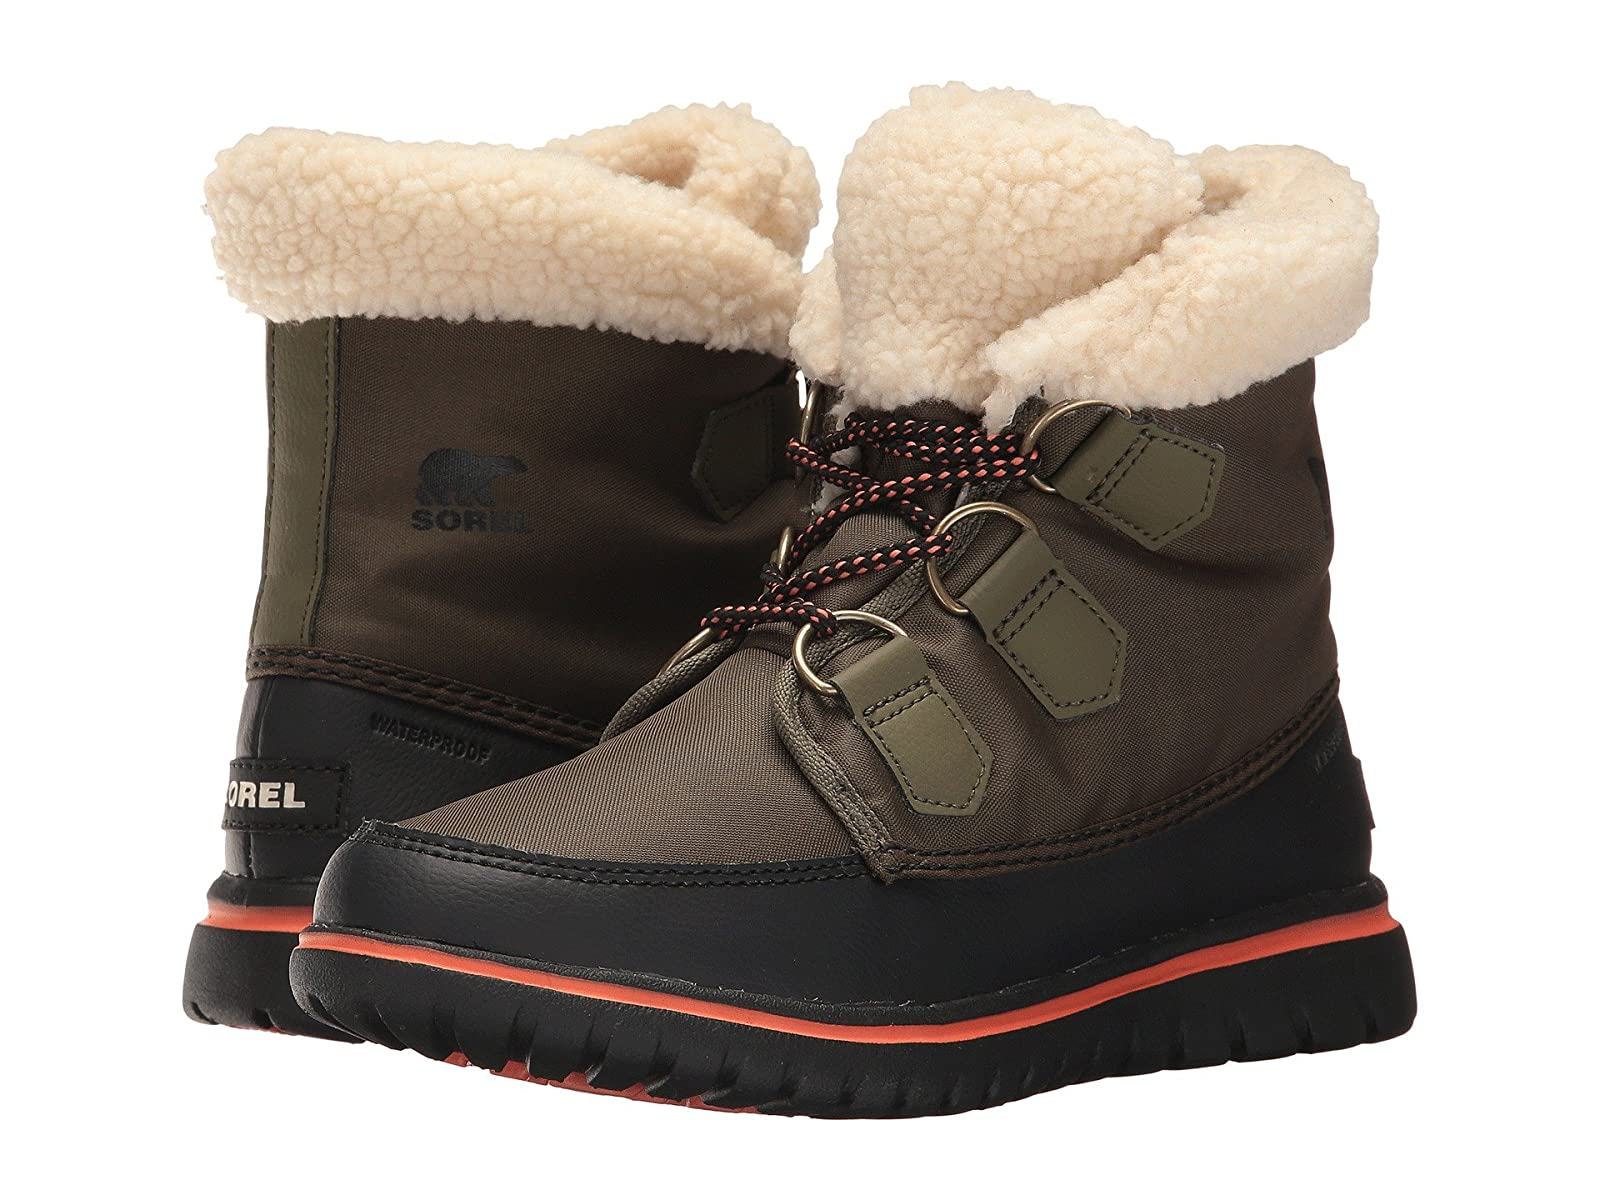 SOREL Cozy CarnivalCheap and distinctive eye-catching shoes